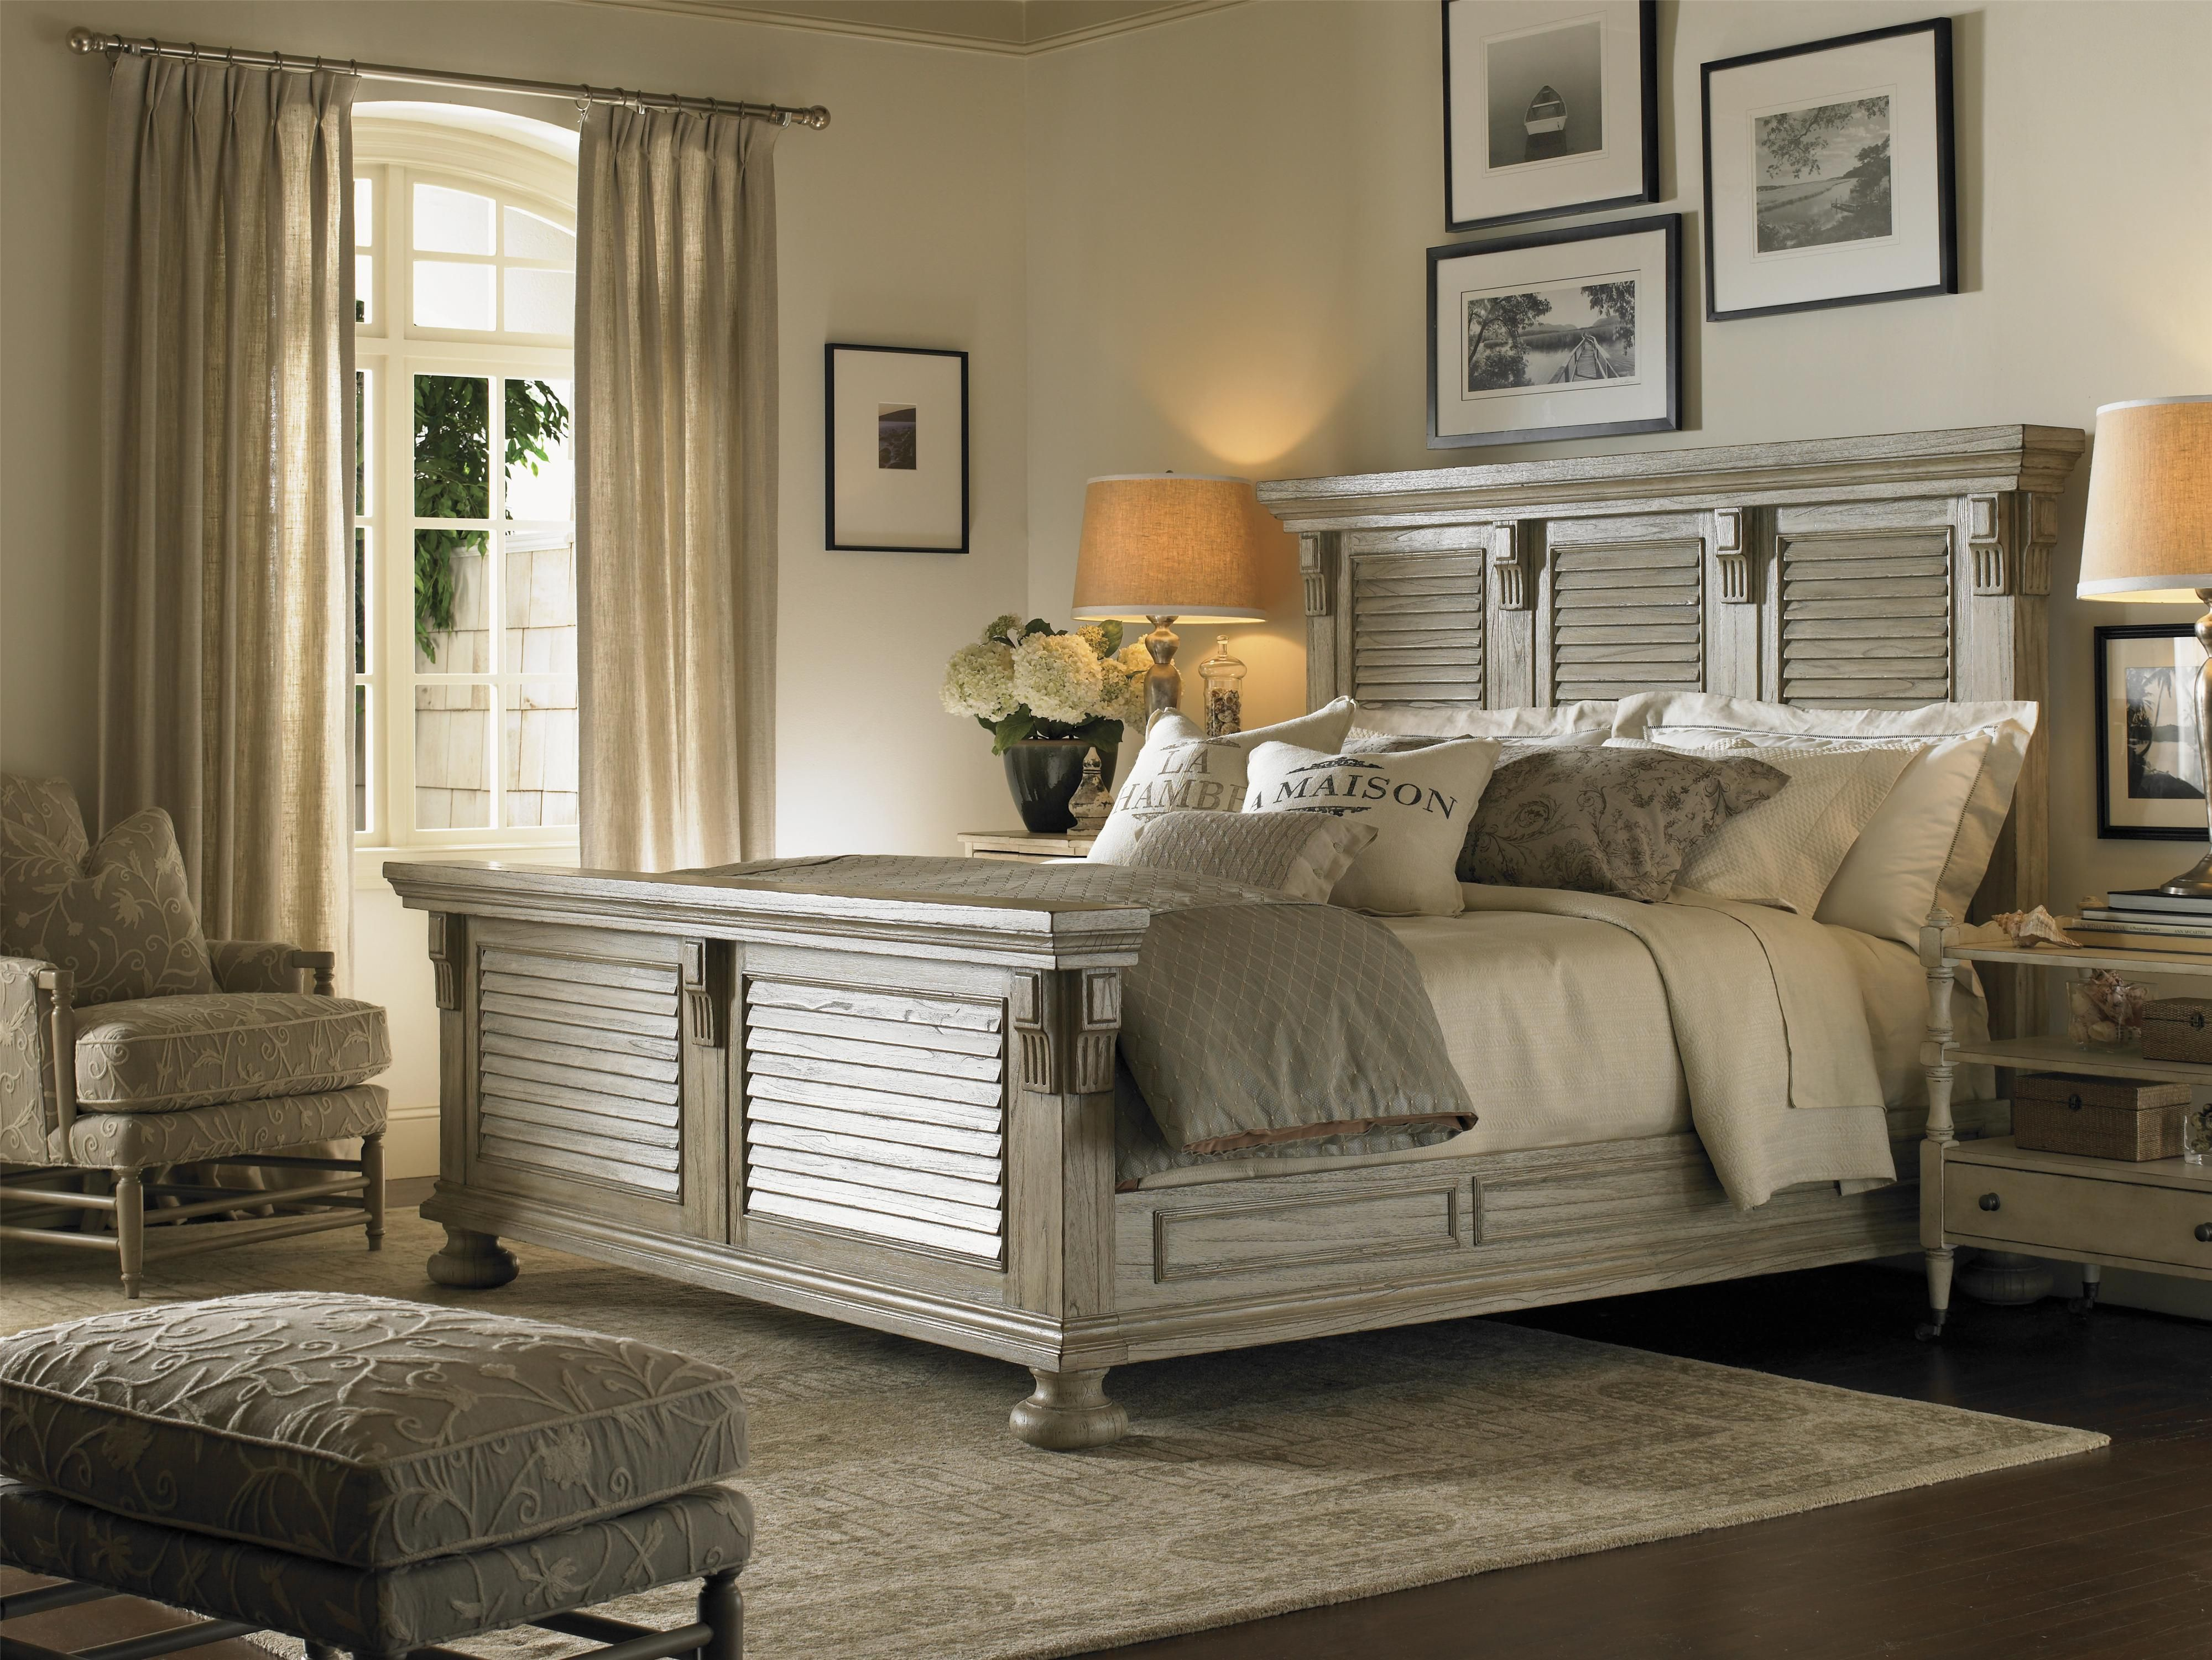 Furniture stores in chapel hill nc -  Point Headboard Footboard Bed With Louvered Panels Distressed Finish Riverview Galleries Headboard Footboard Durham Chapel Hill Raleigh